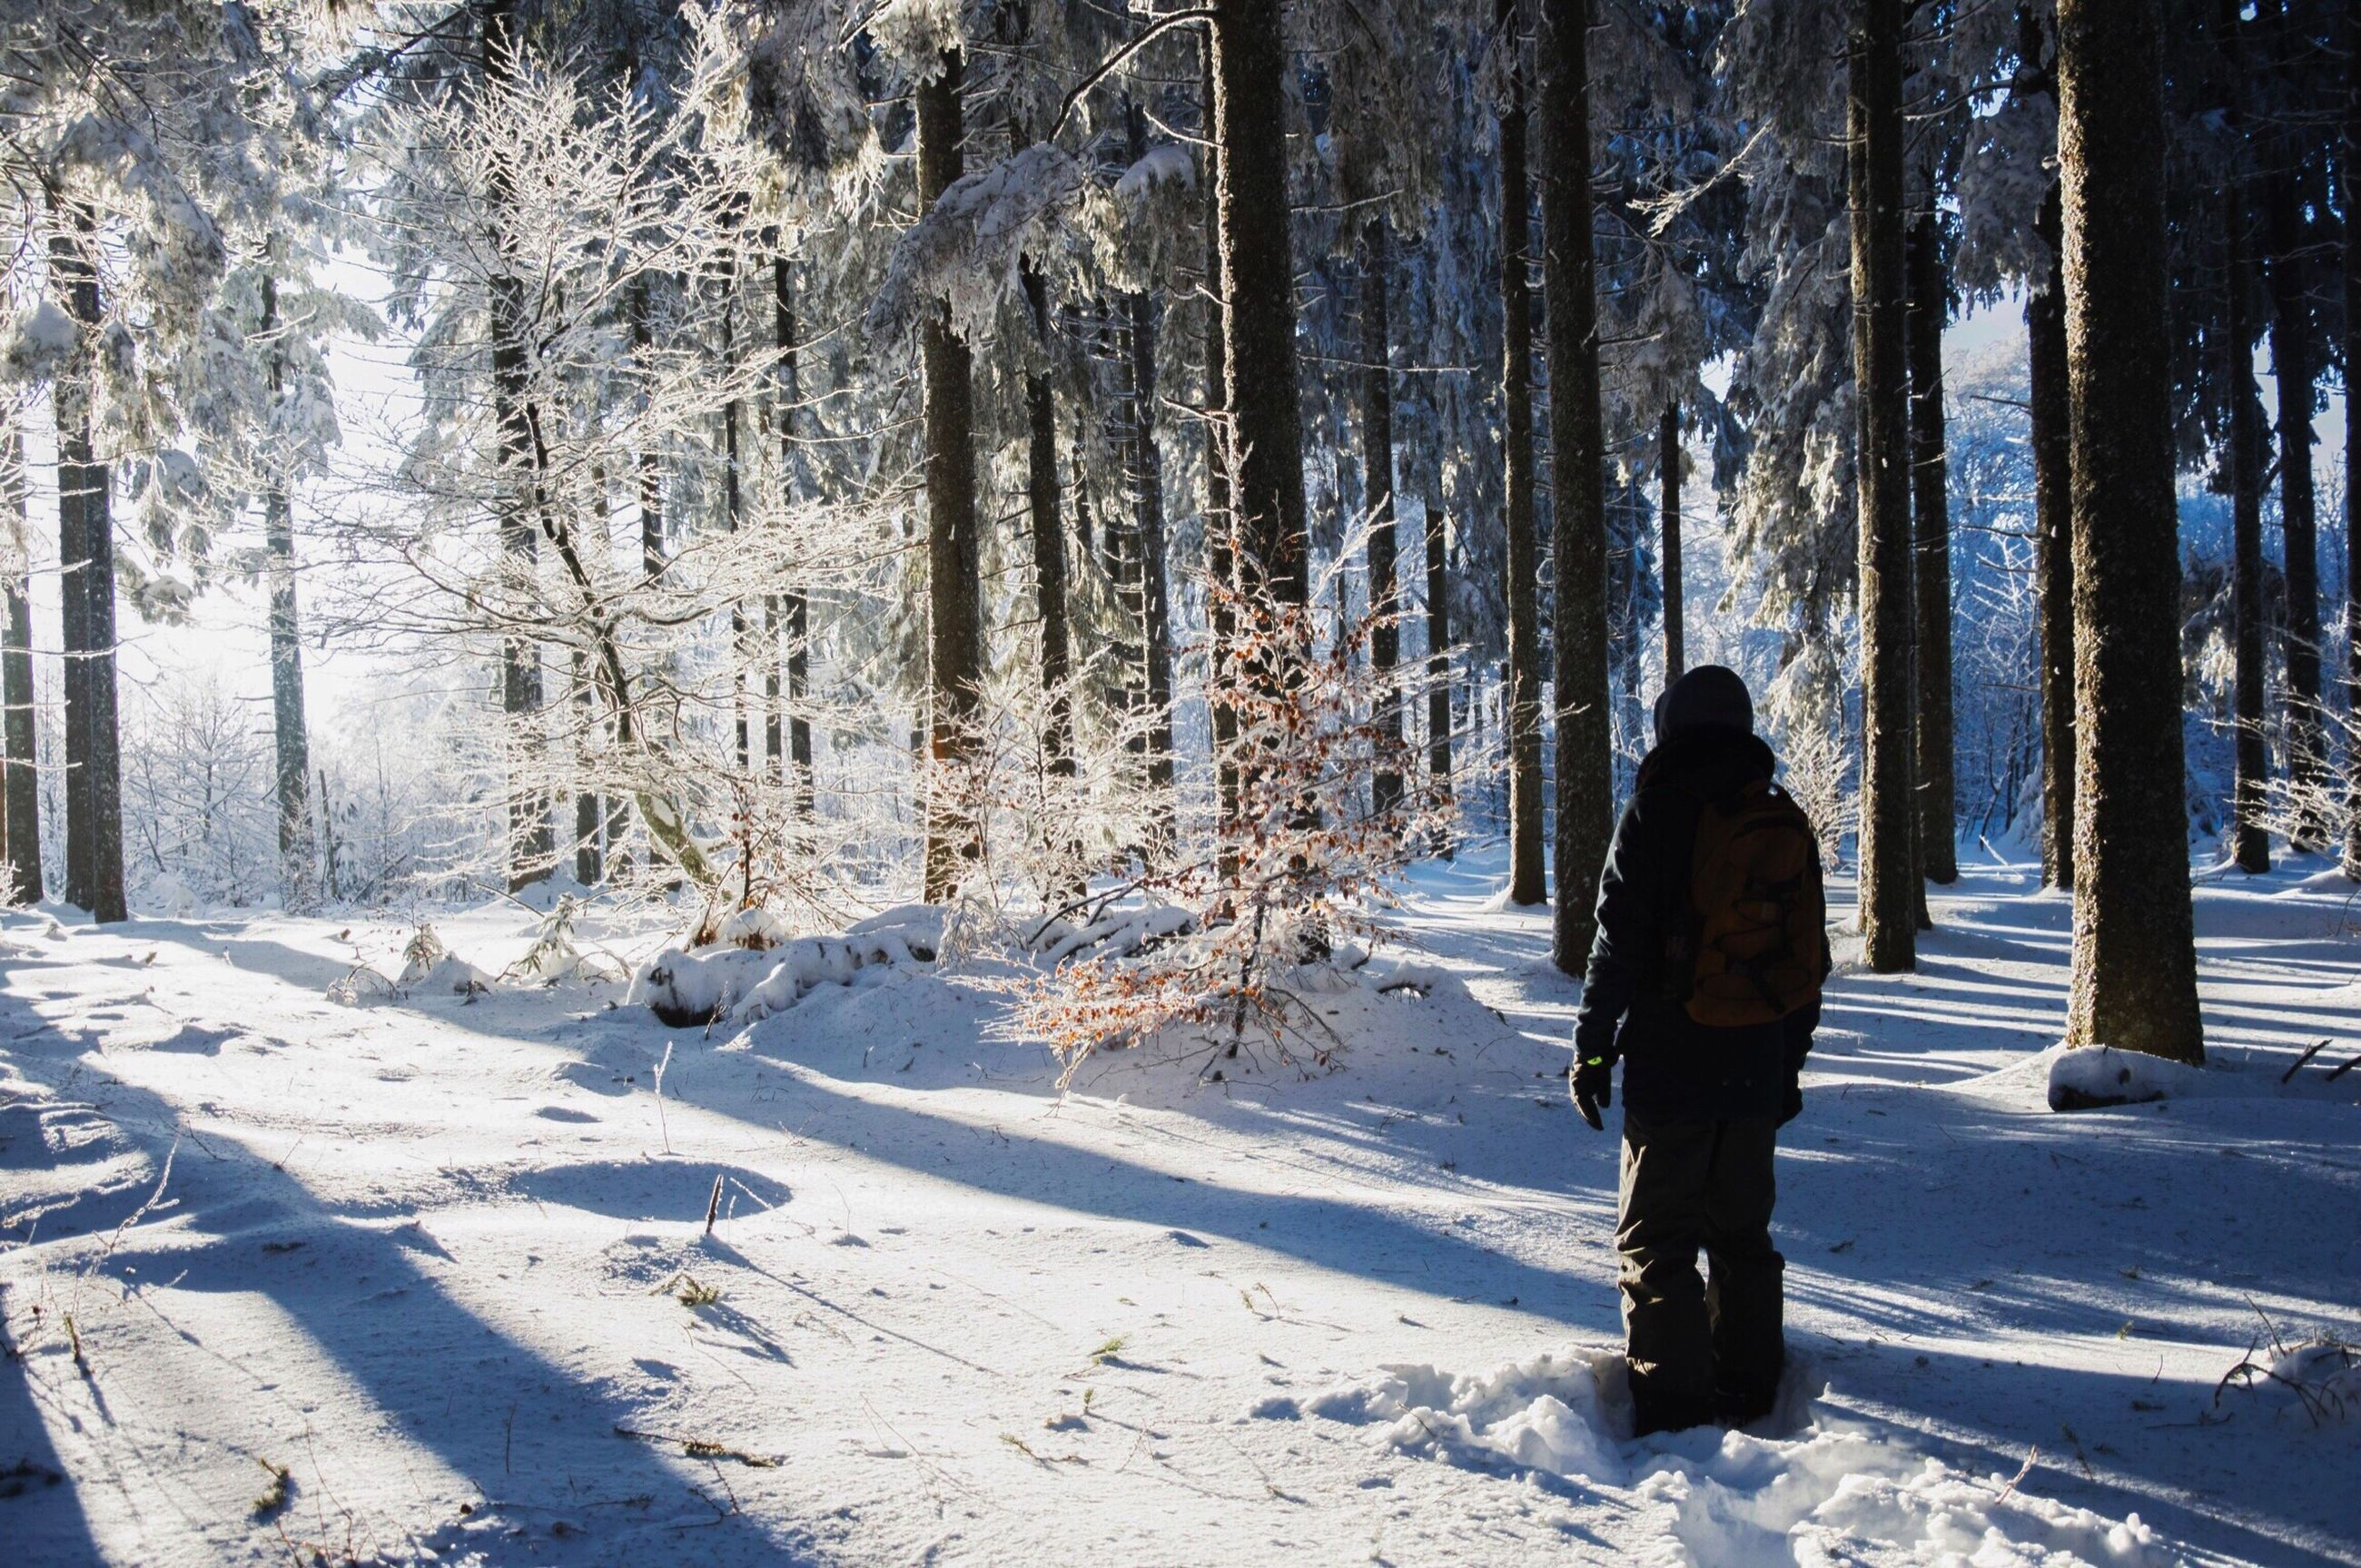 winter, snow, cold temperature, tree, nature, real people, one person, outdoors, beauty in nature, tree trunk, warm clothing, day, landscape, only men, people, adults only, adult